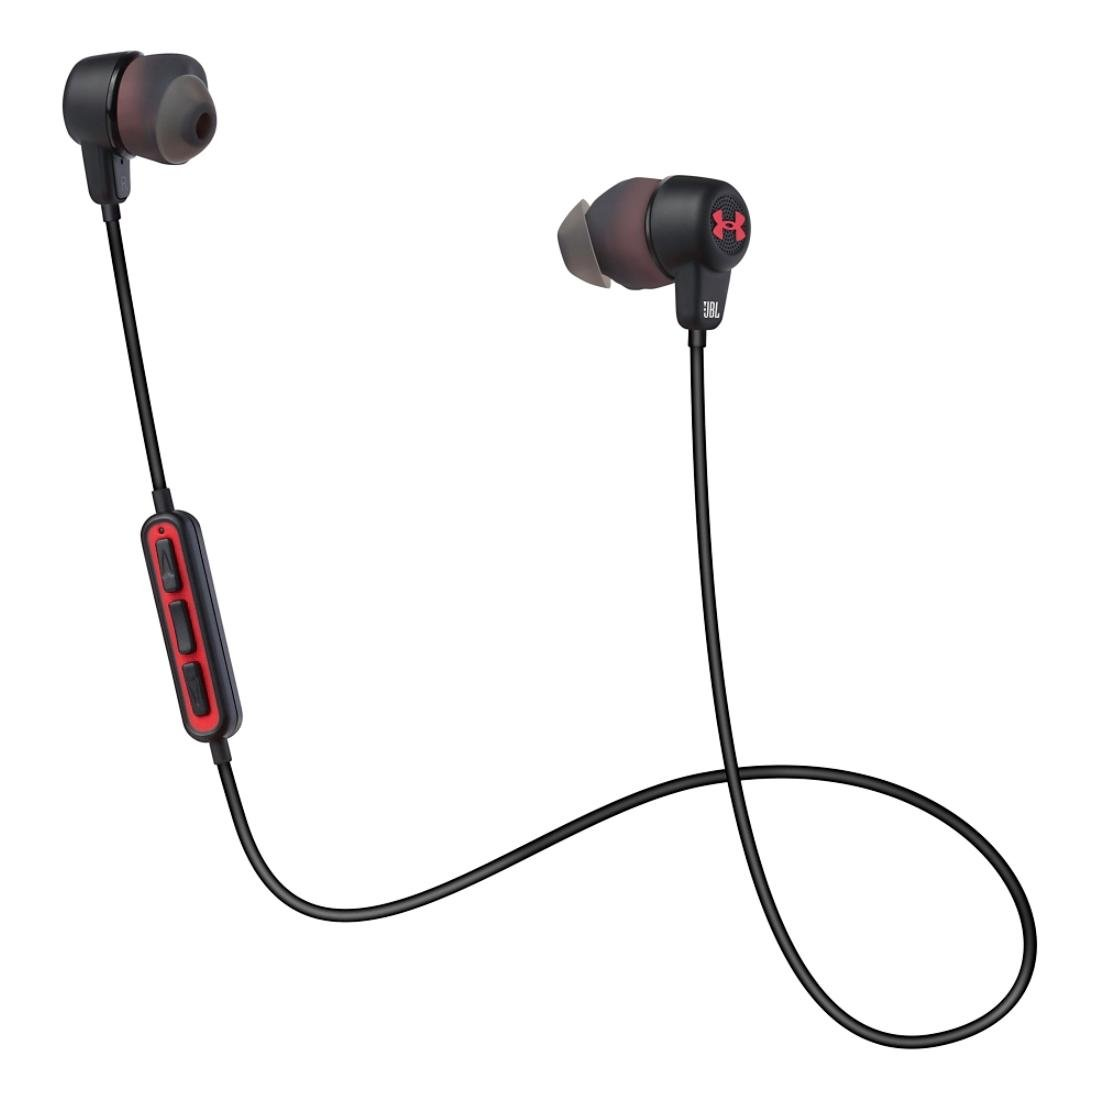 jbl kablosuz kulakl k. amazon.com: jbl under armour wireless headphones, one size, black: sports \u0026 outdoors jbl kablosuz kulakl k